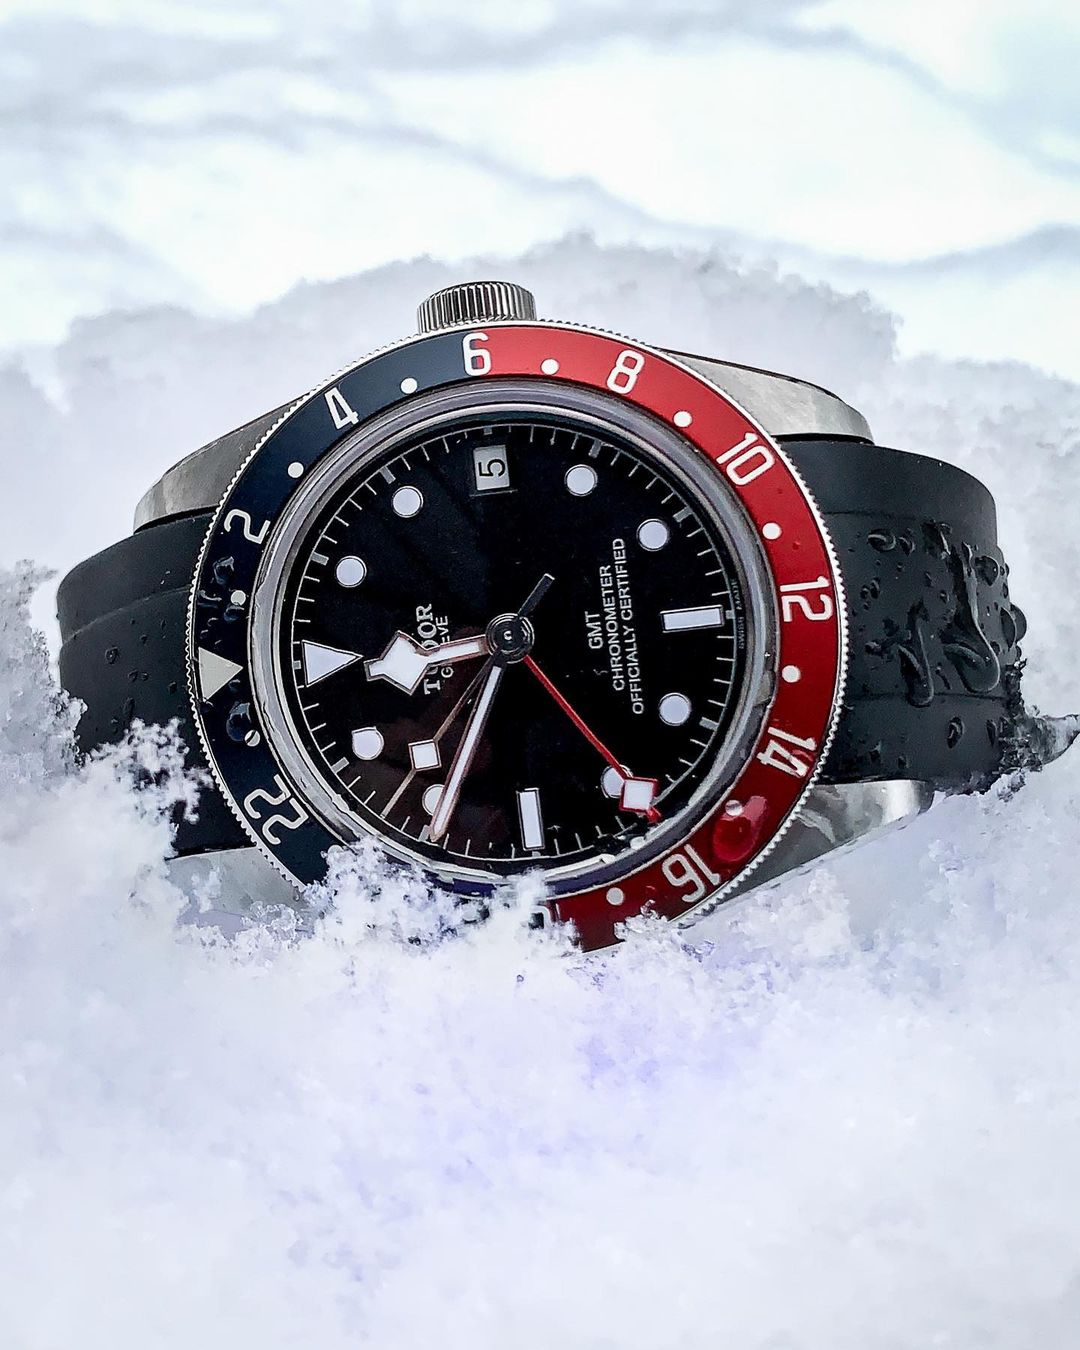 tudor watch on rubber everest band in snow